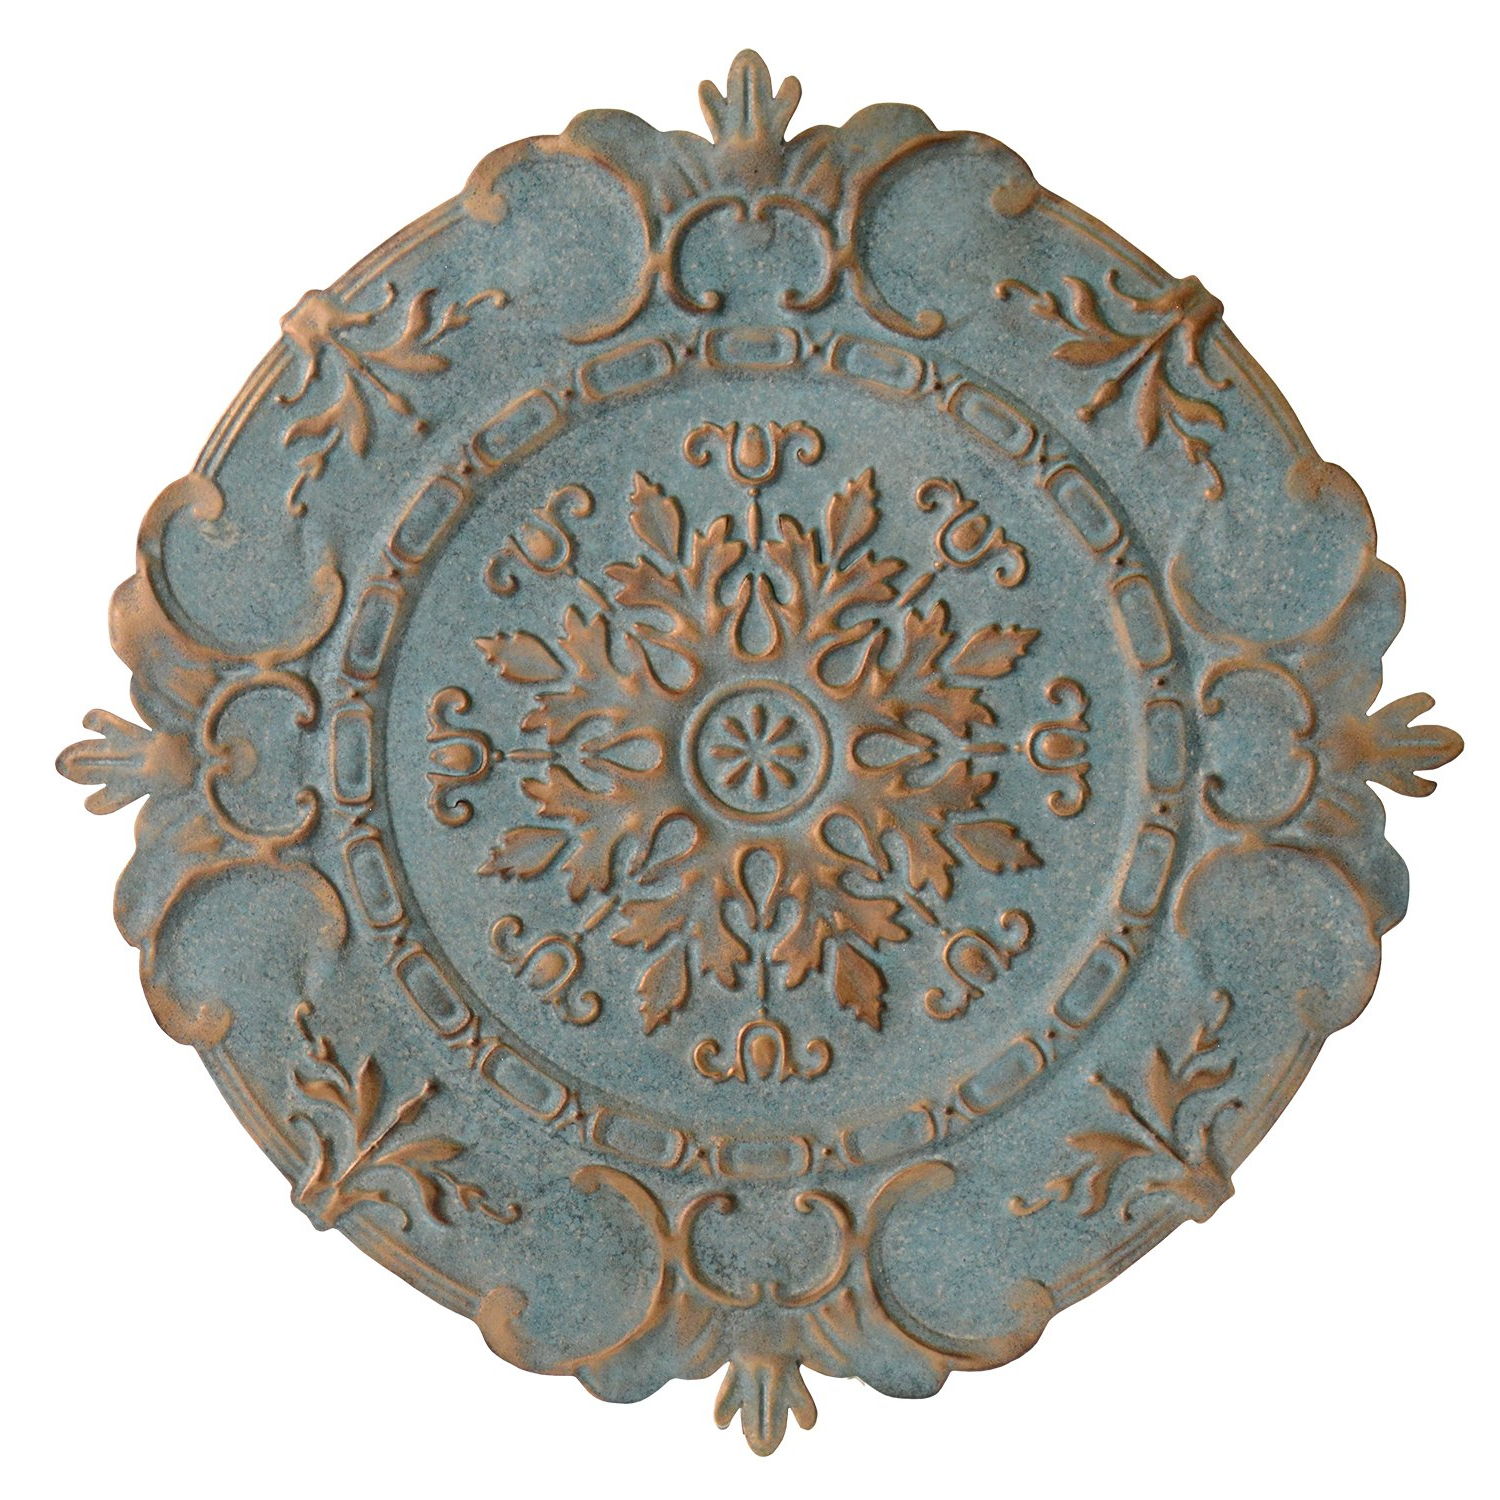 European Medallion Wall Decor With Preferred Amazon: Stratton Home Decor European Medallion Wall Decor, Blue (View 3 of 20)